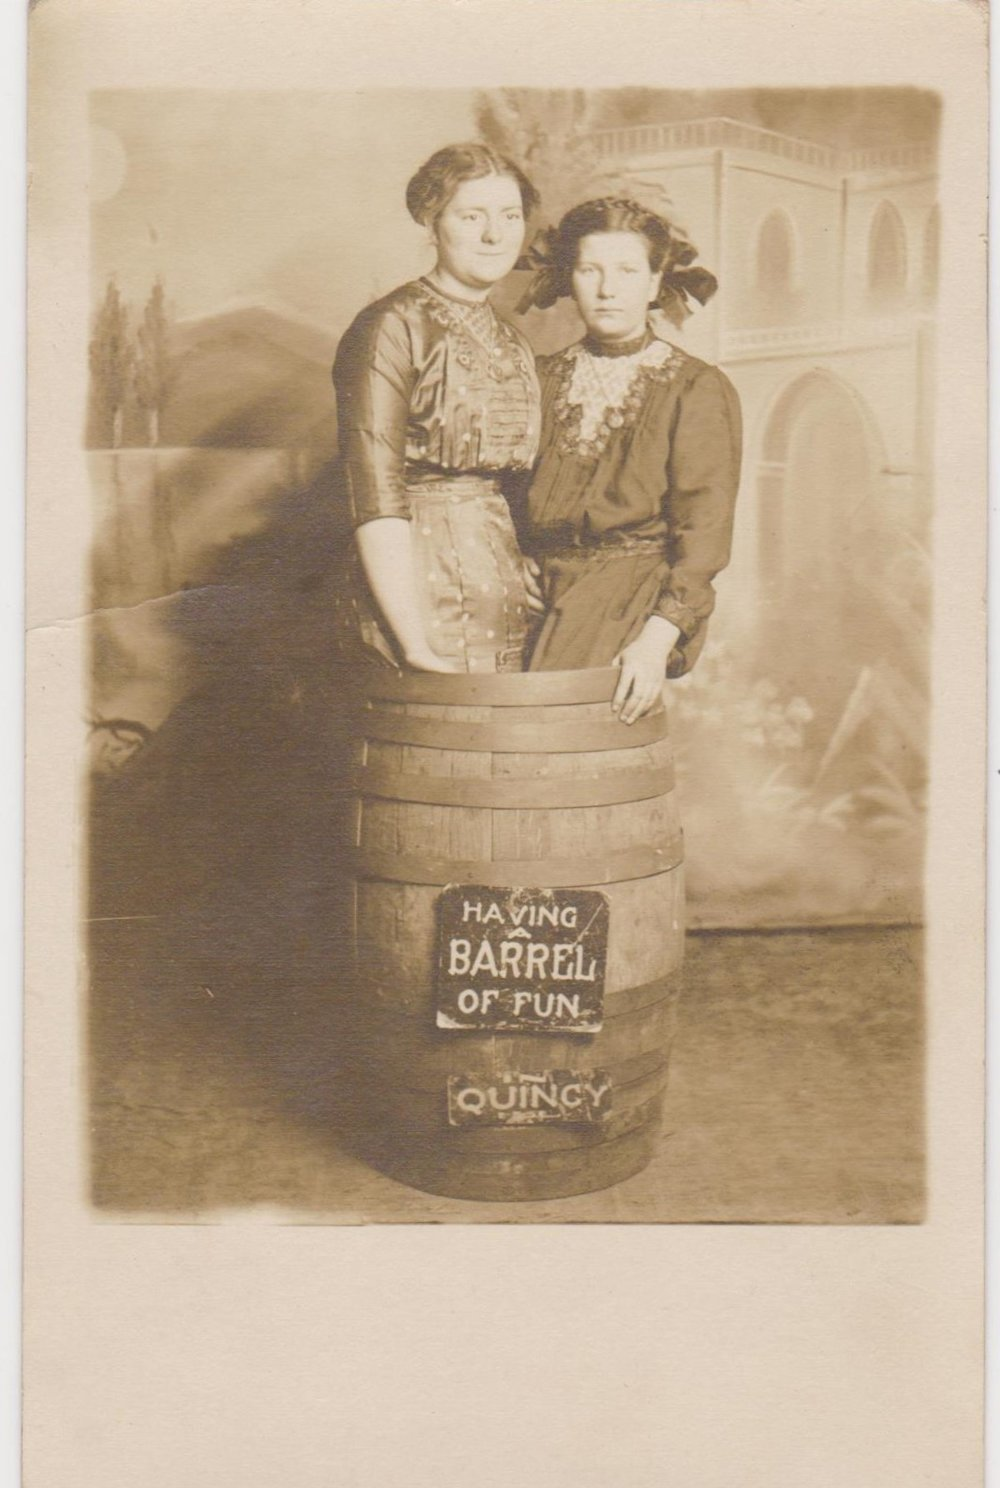 Having a barrel of fun! Vintage photos of women and signs.